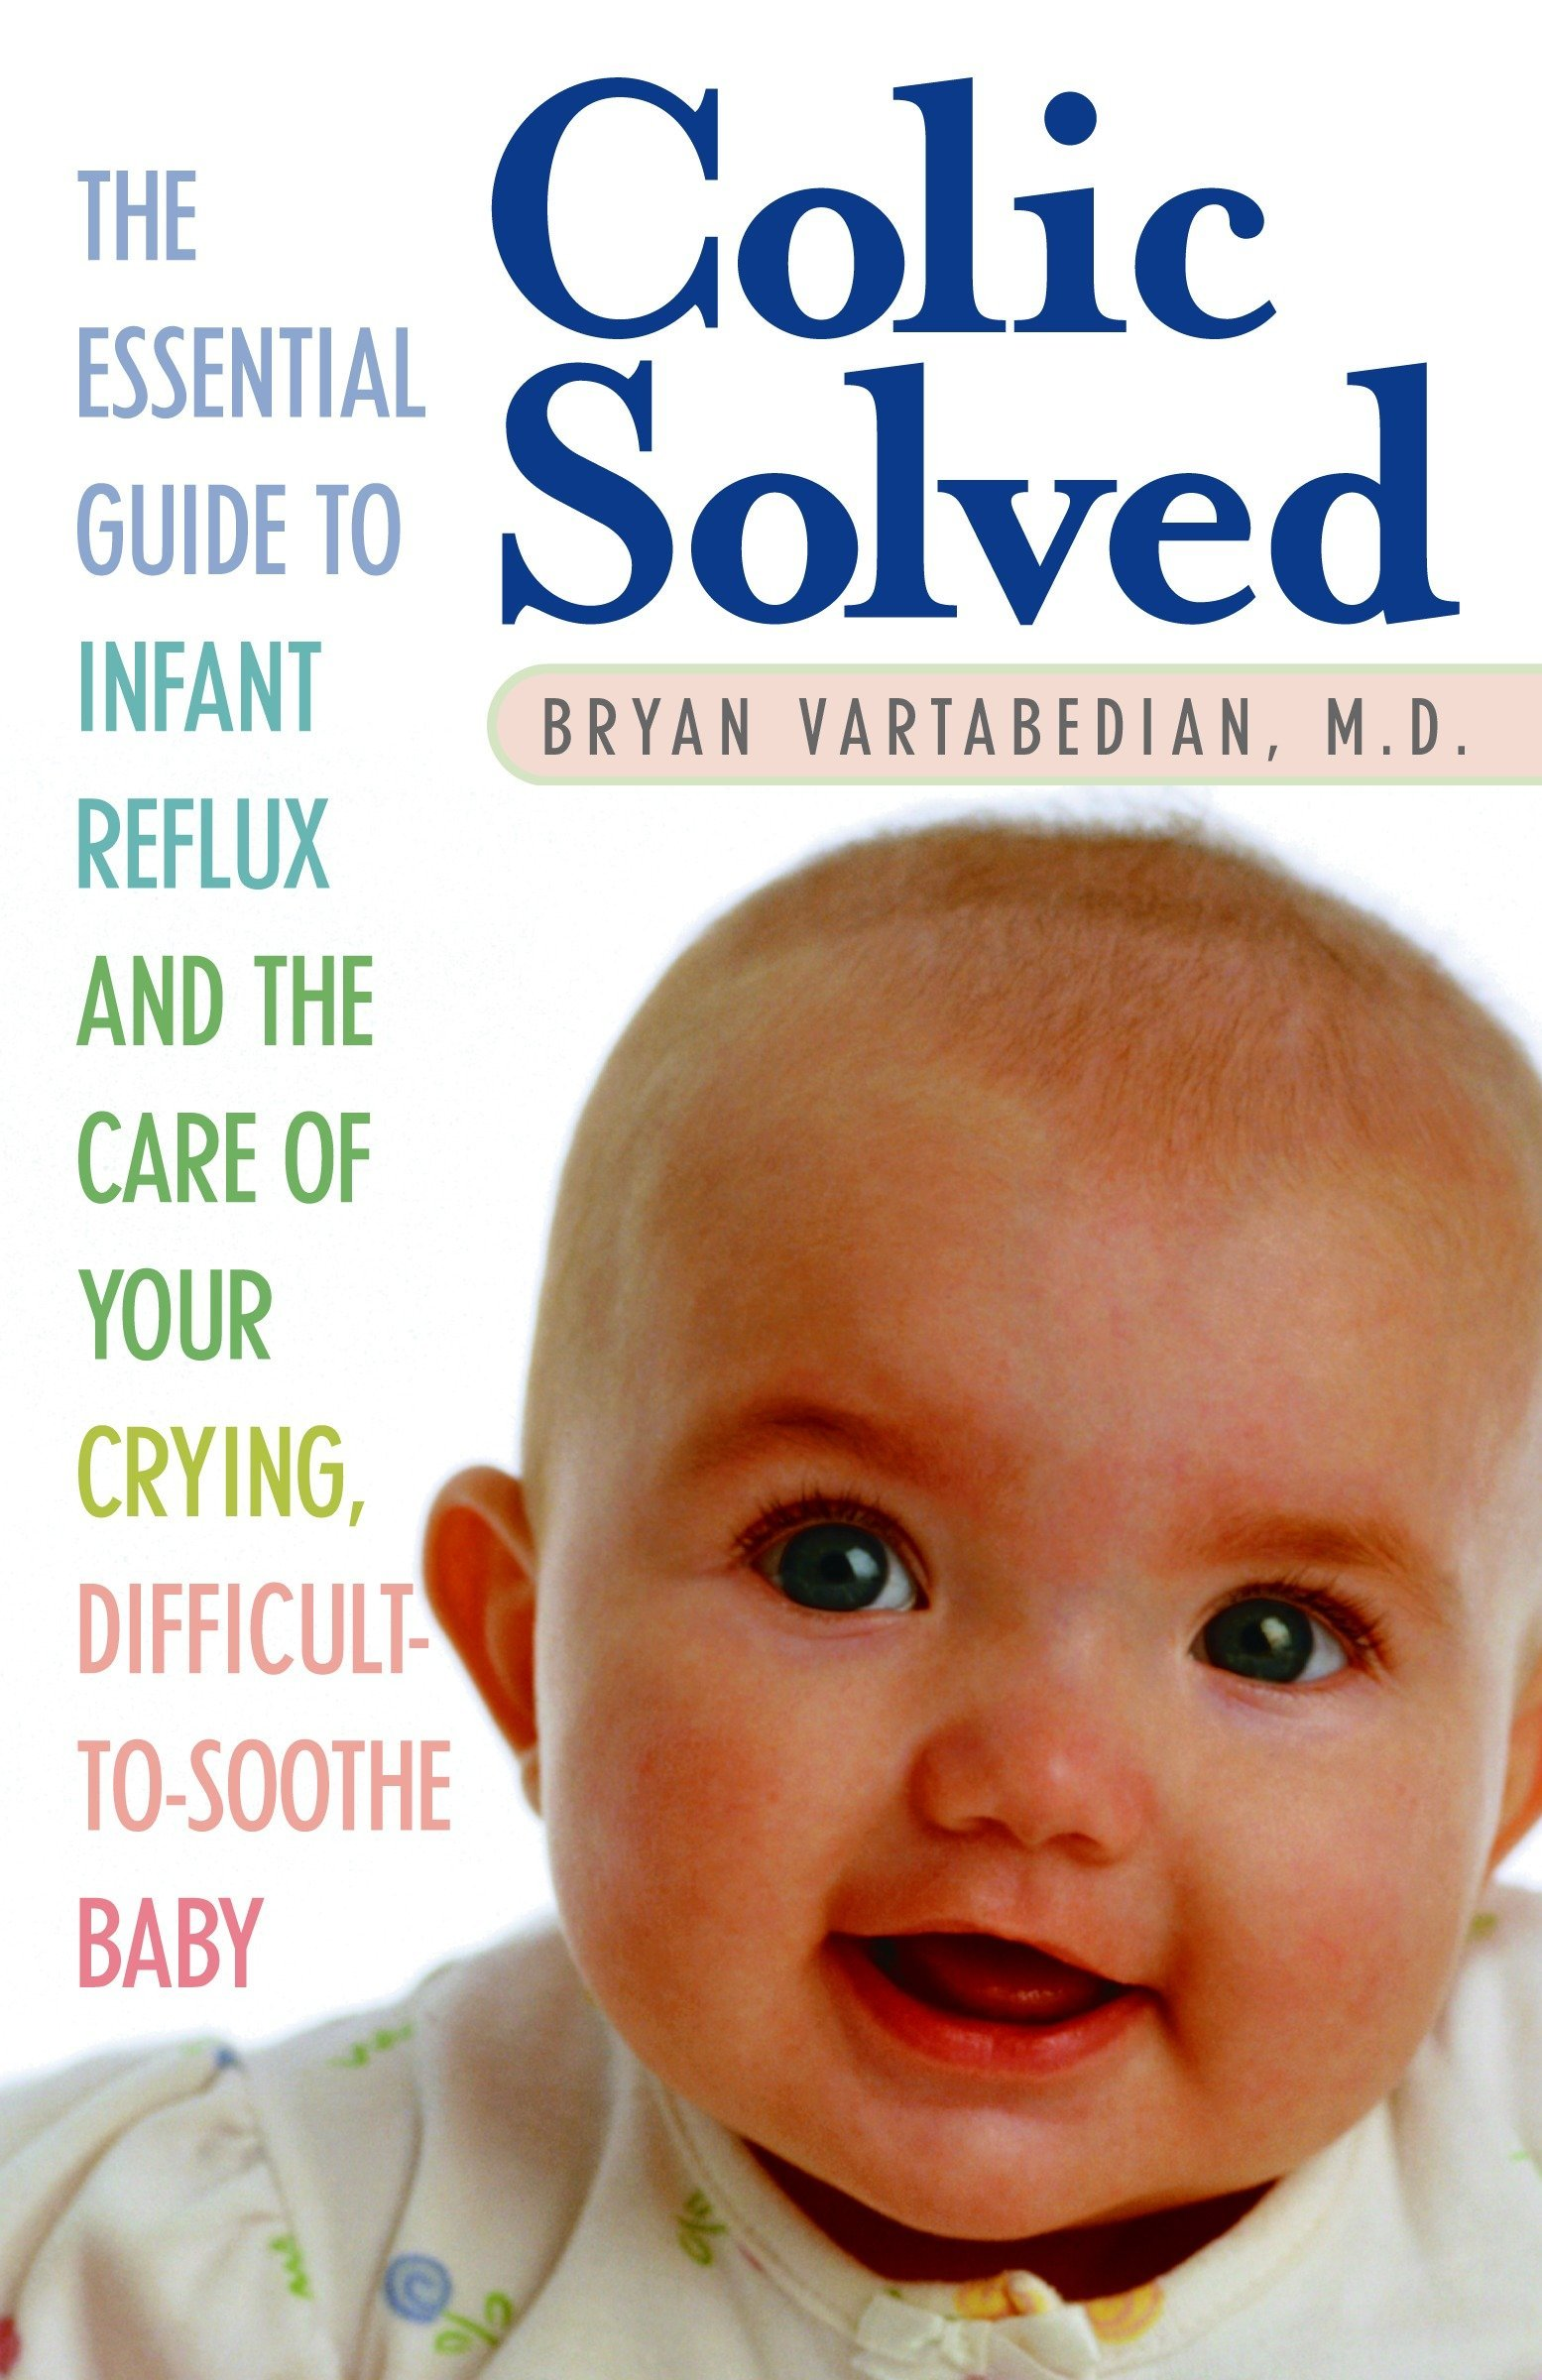 Colic: just relive or go to the doctor